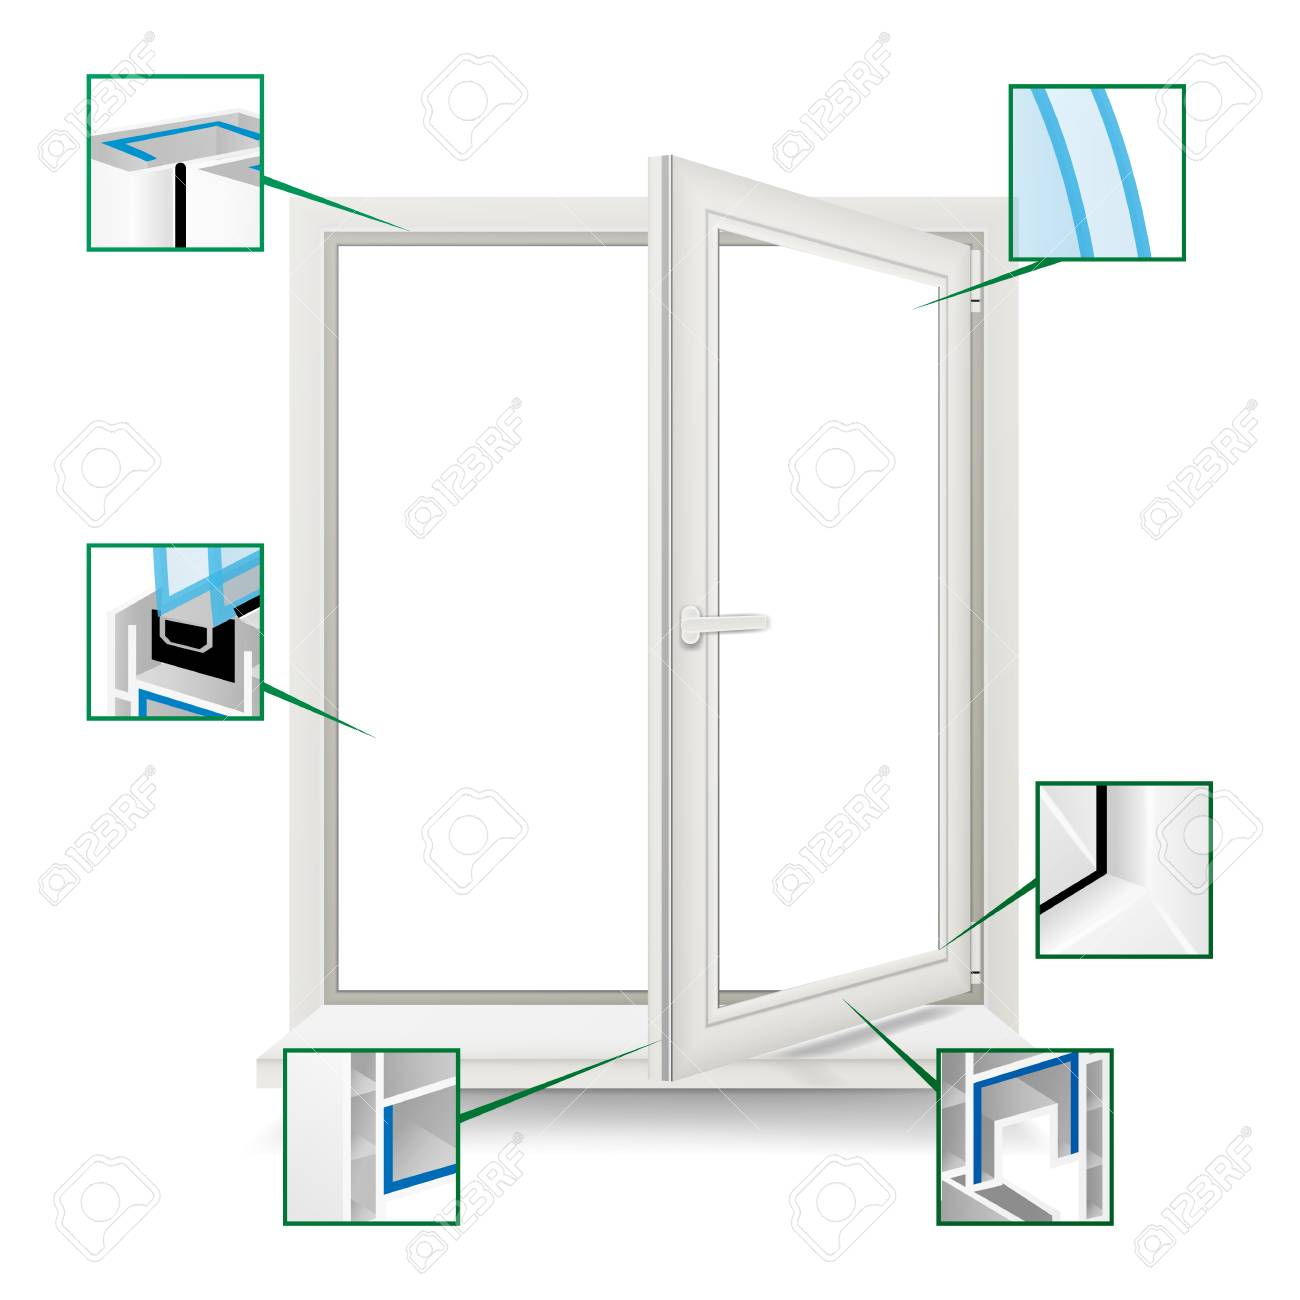 Plastic Window Frame Diagram - DIY Enthusiasts Wiring Diagrams •